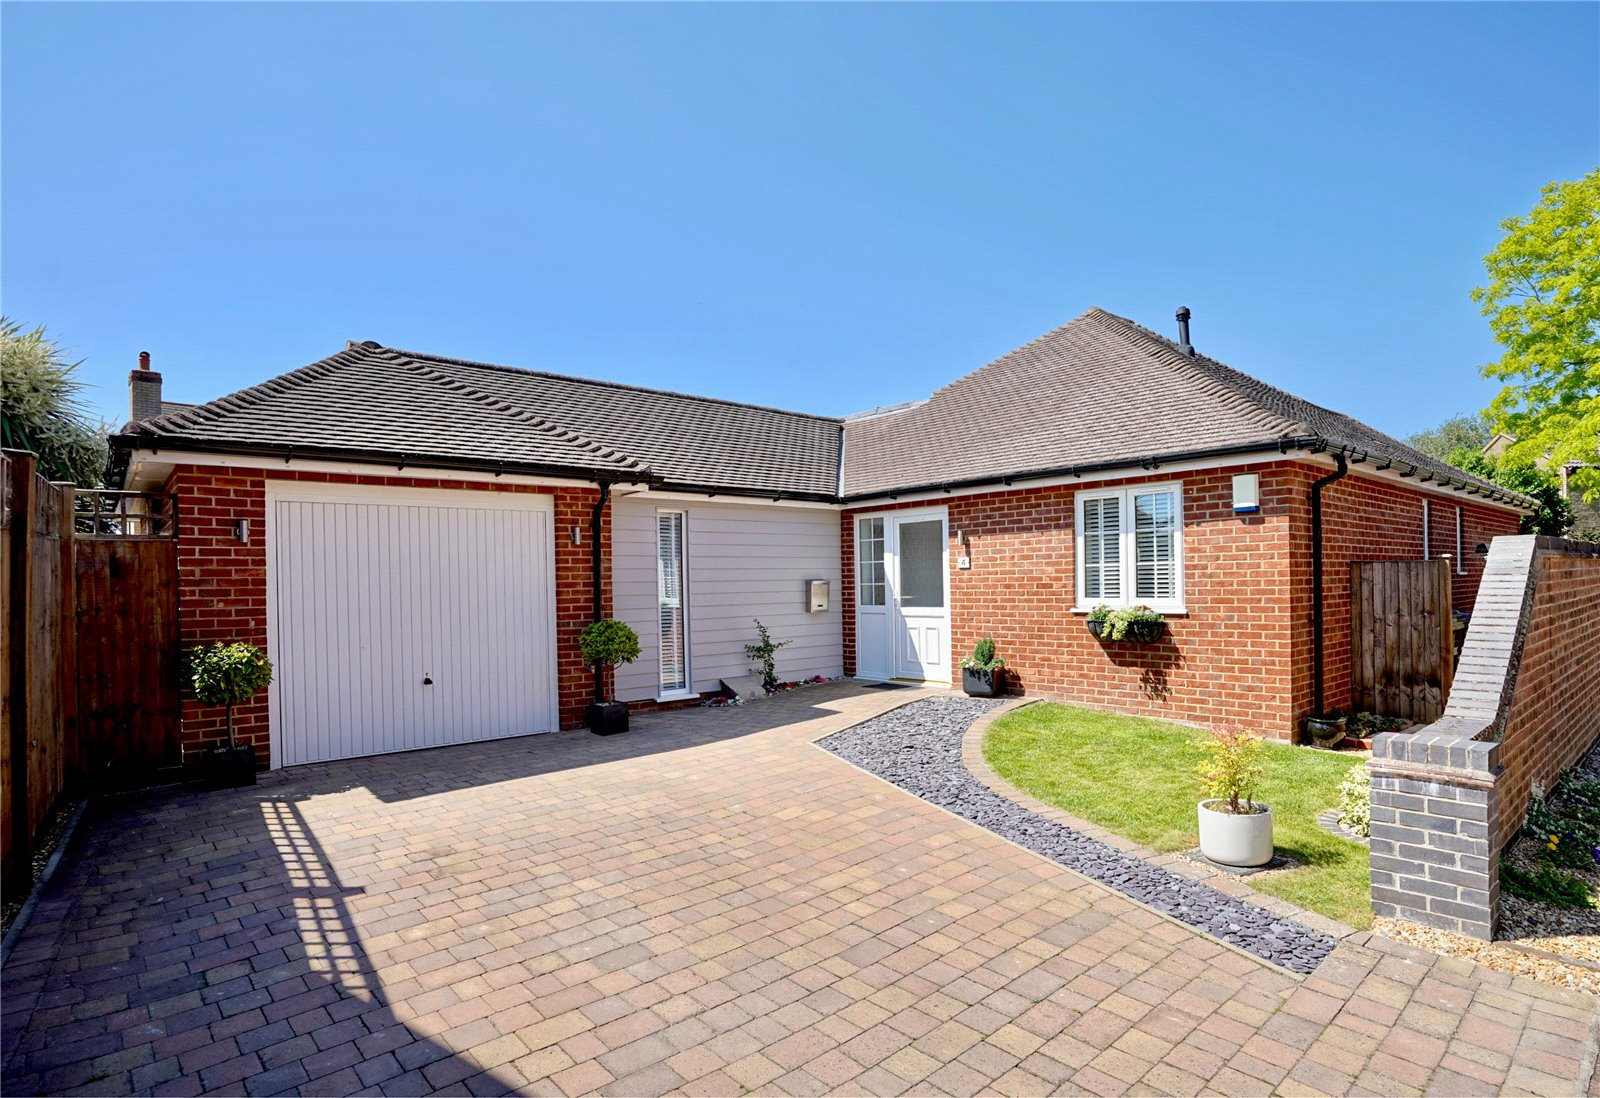 3 bed bungalow for sale in Pipistrelle Close, Little Paxton - Property Image 1